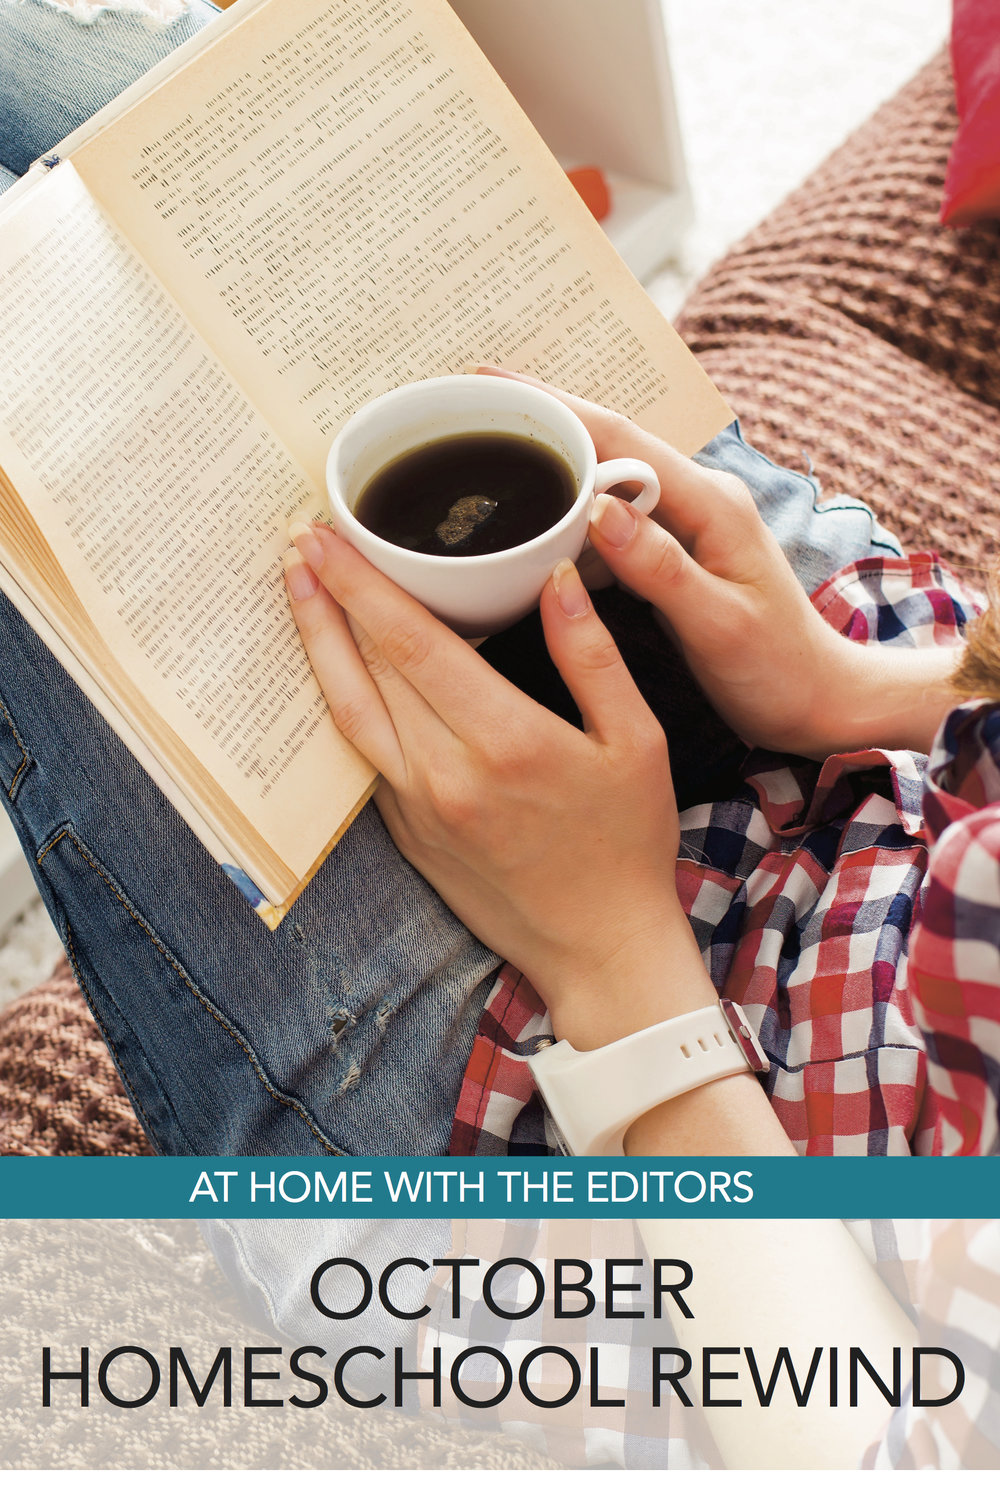 Fun peek behind the scenes at what's happening in the homeschool life of the editor of home/school/life magazine #homeschool.